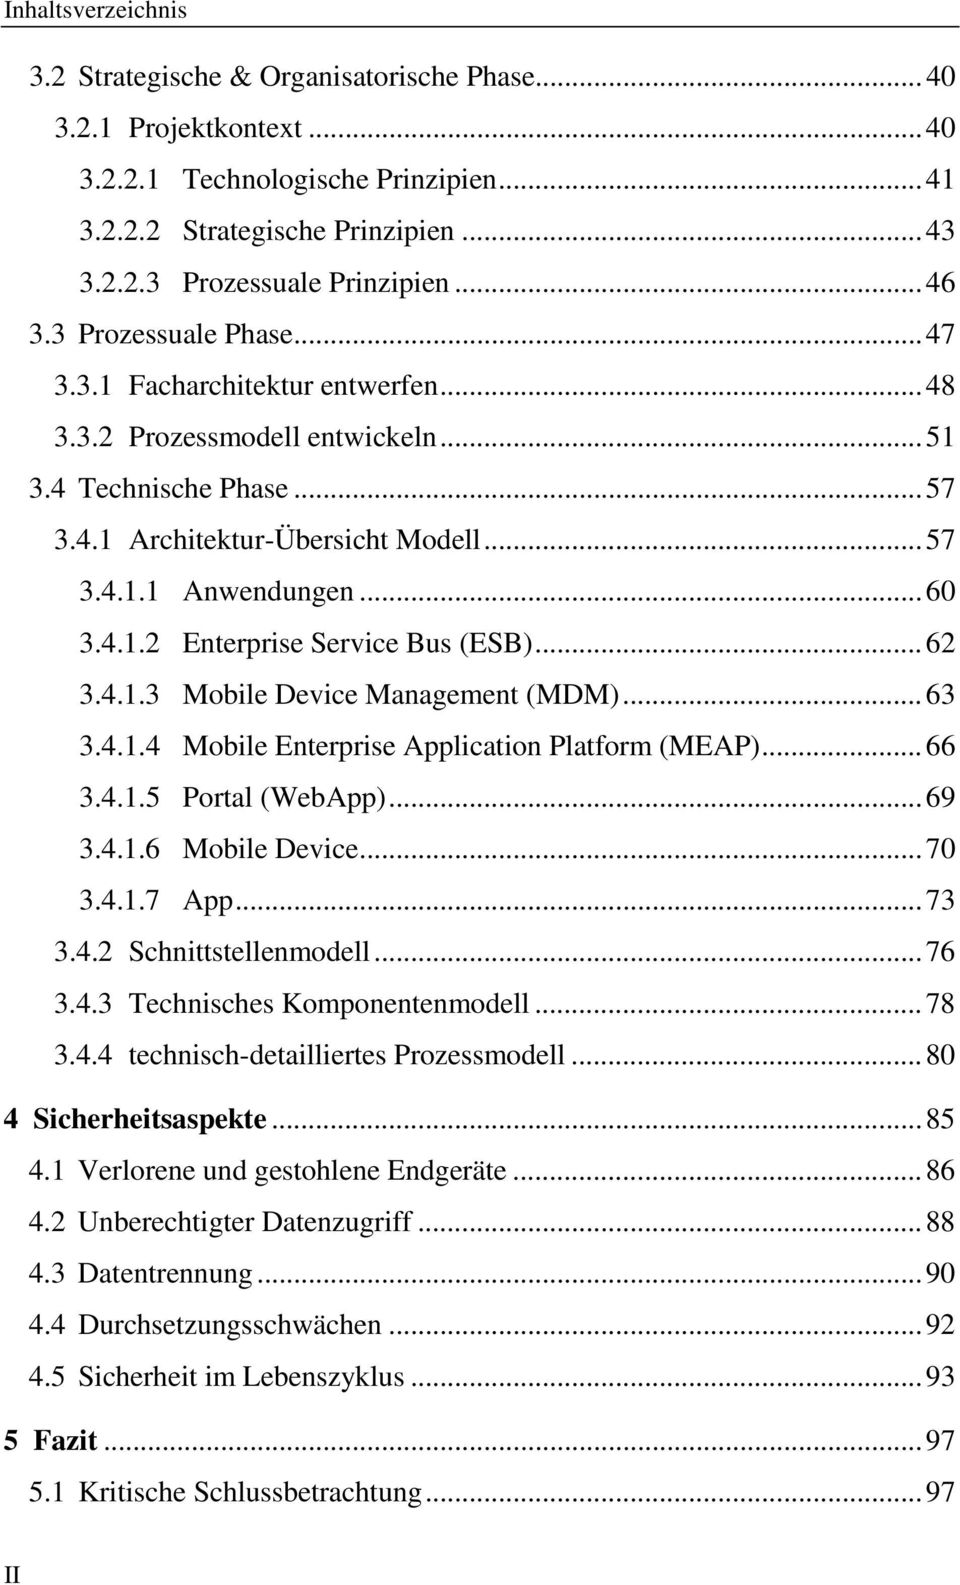 .. 60 3.4.1.2 Enterprise Service Bus (ESB)... 62 3.4.1.3 Mobile Device Management (MDM)... 63 3.4.1.4 Mobile Enterprise Application Platform (MEAP)... 66 3.4.1.5 Portal (WebApp)... 69 3.4.1.6 Mobile Device.